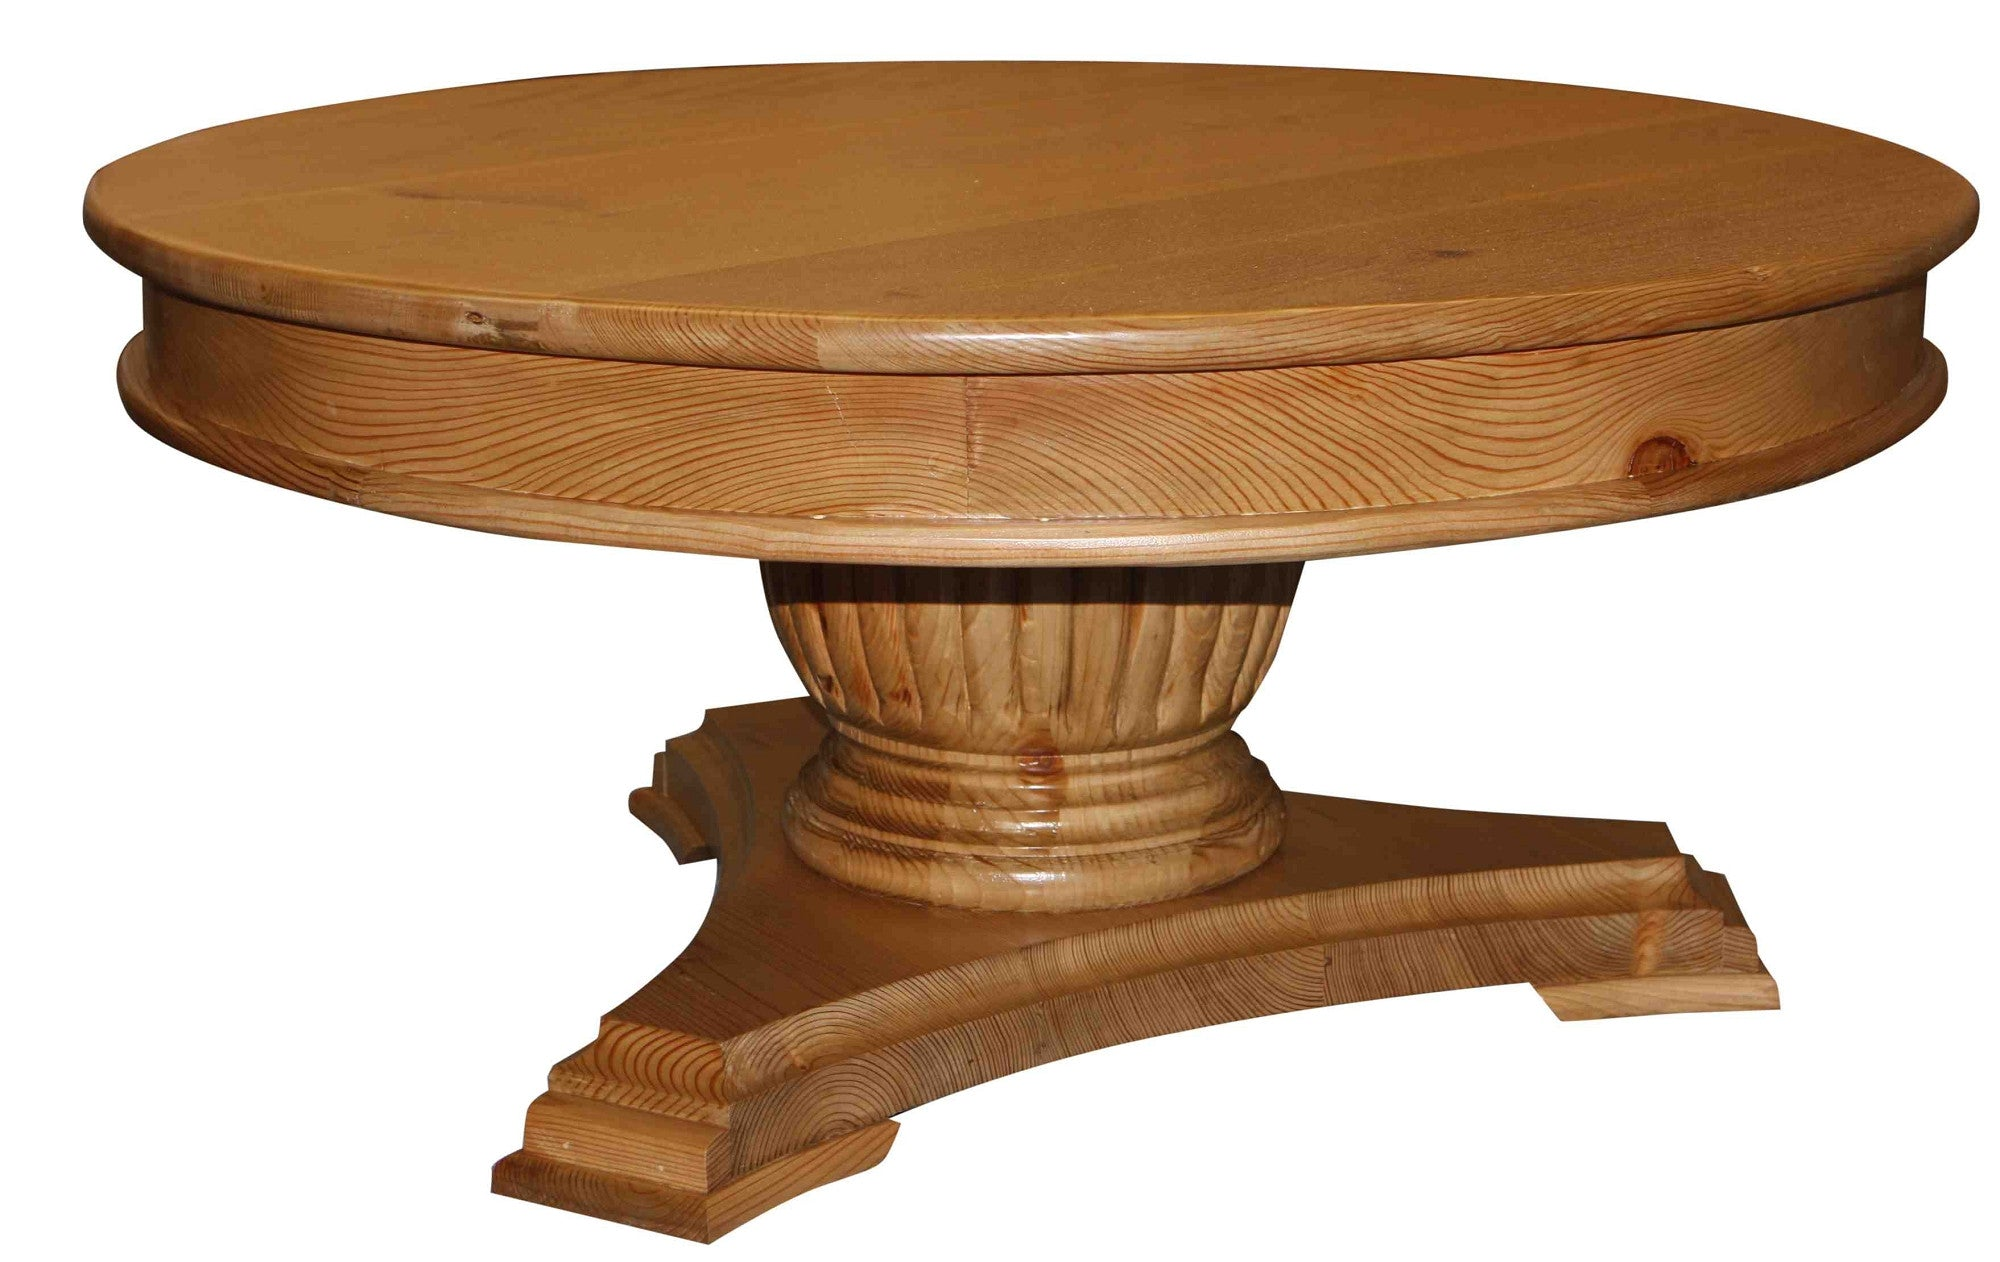 ... Round Coffee Table $ 2,695.00 · Finished In A Natural Wood